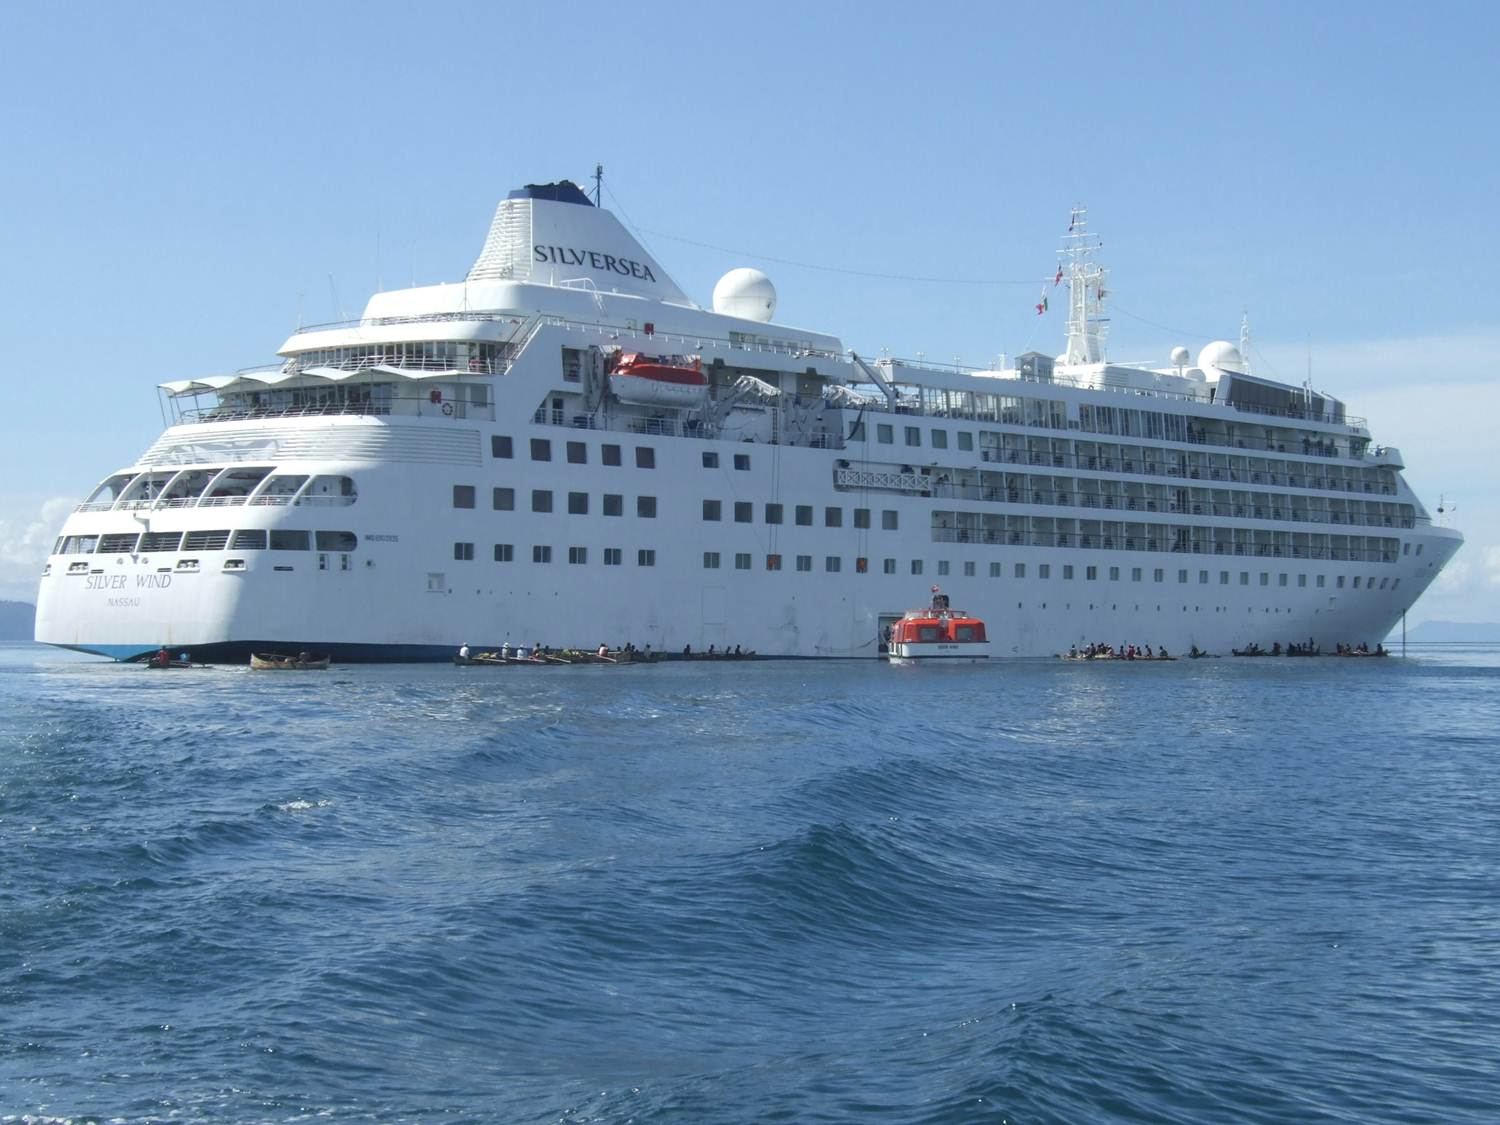 Silversea Cruises: You get what you pay for